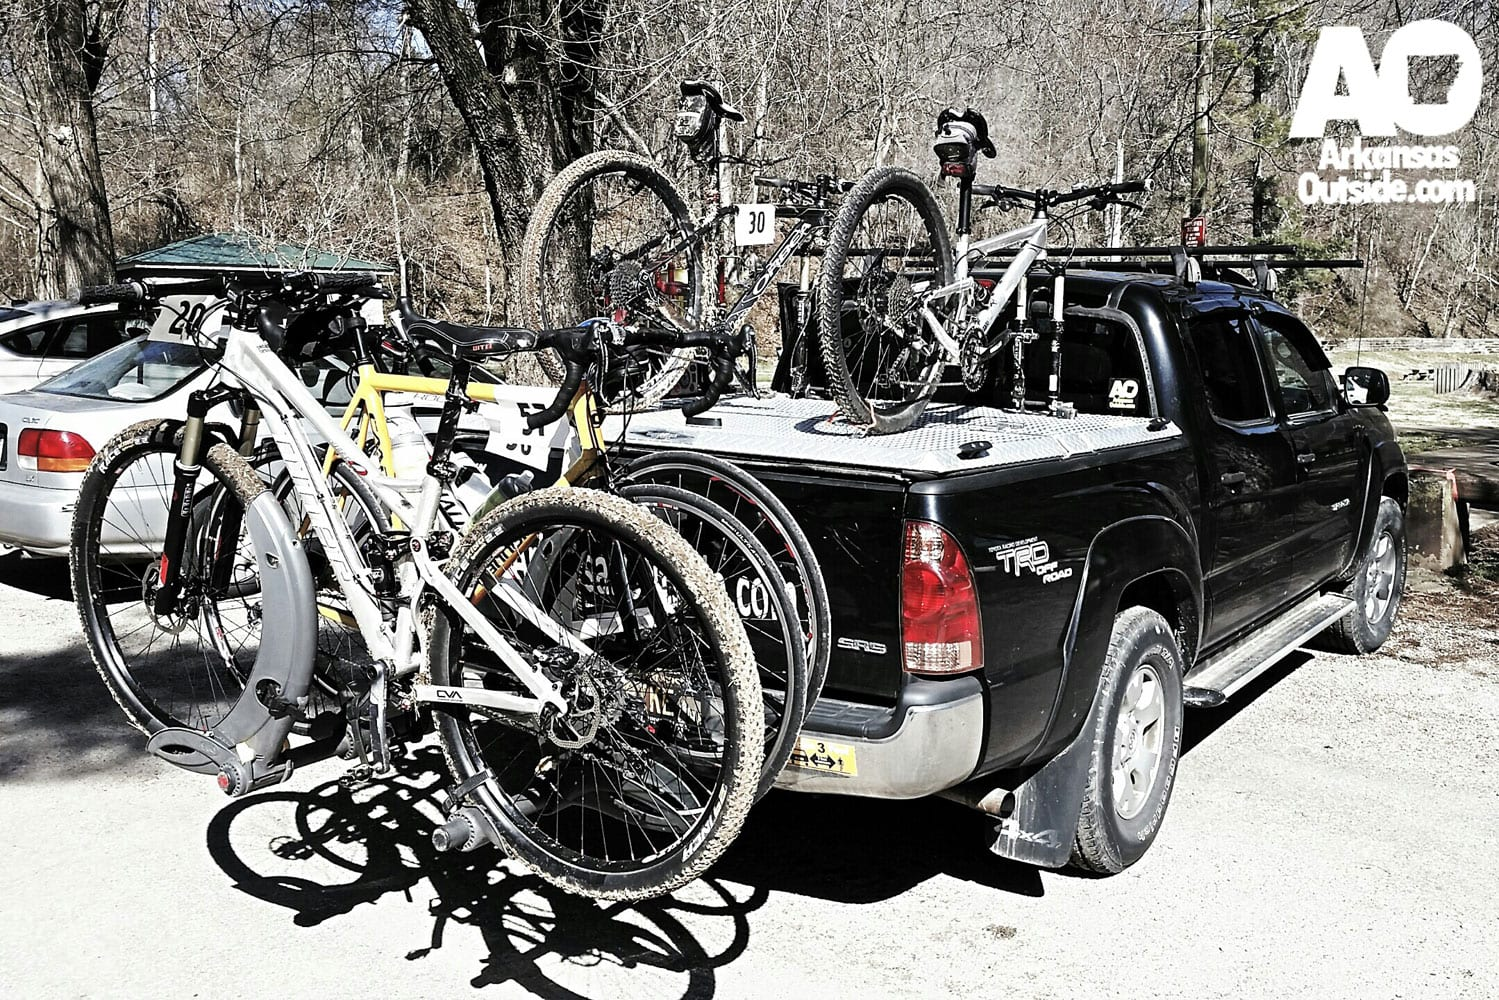 The mobile office, covered in bikes.